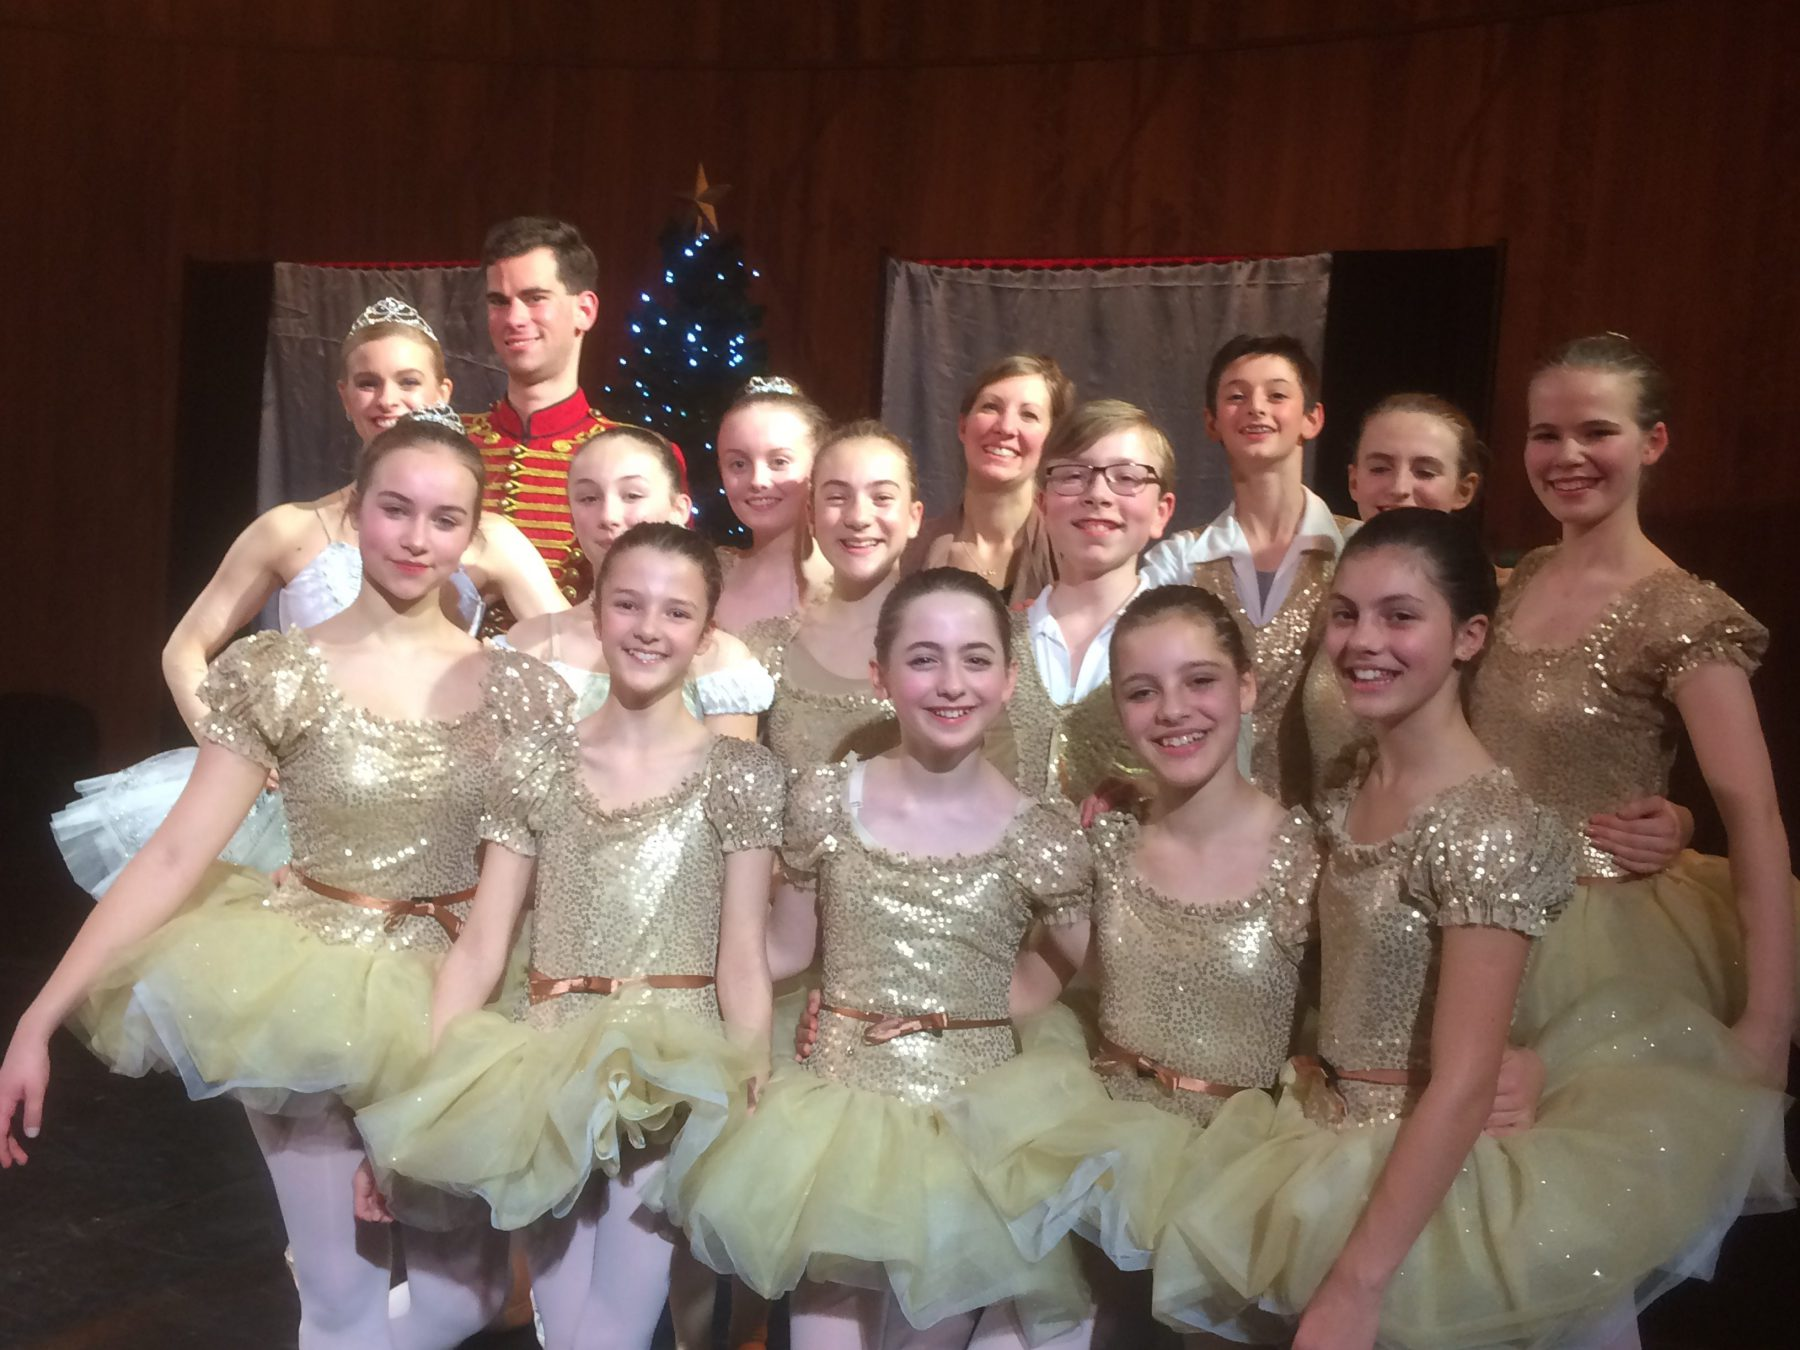 victoria-and-albert-nutcracker-cast-with-maddy-and-guest-artists-december-29th-2016